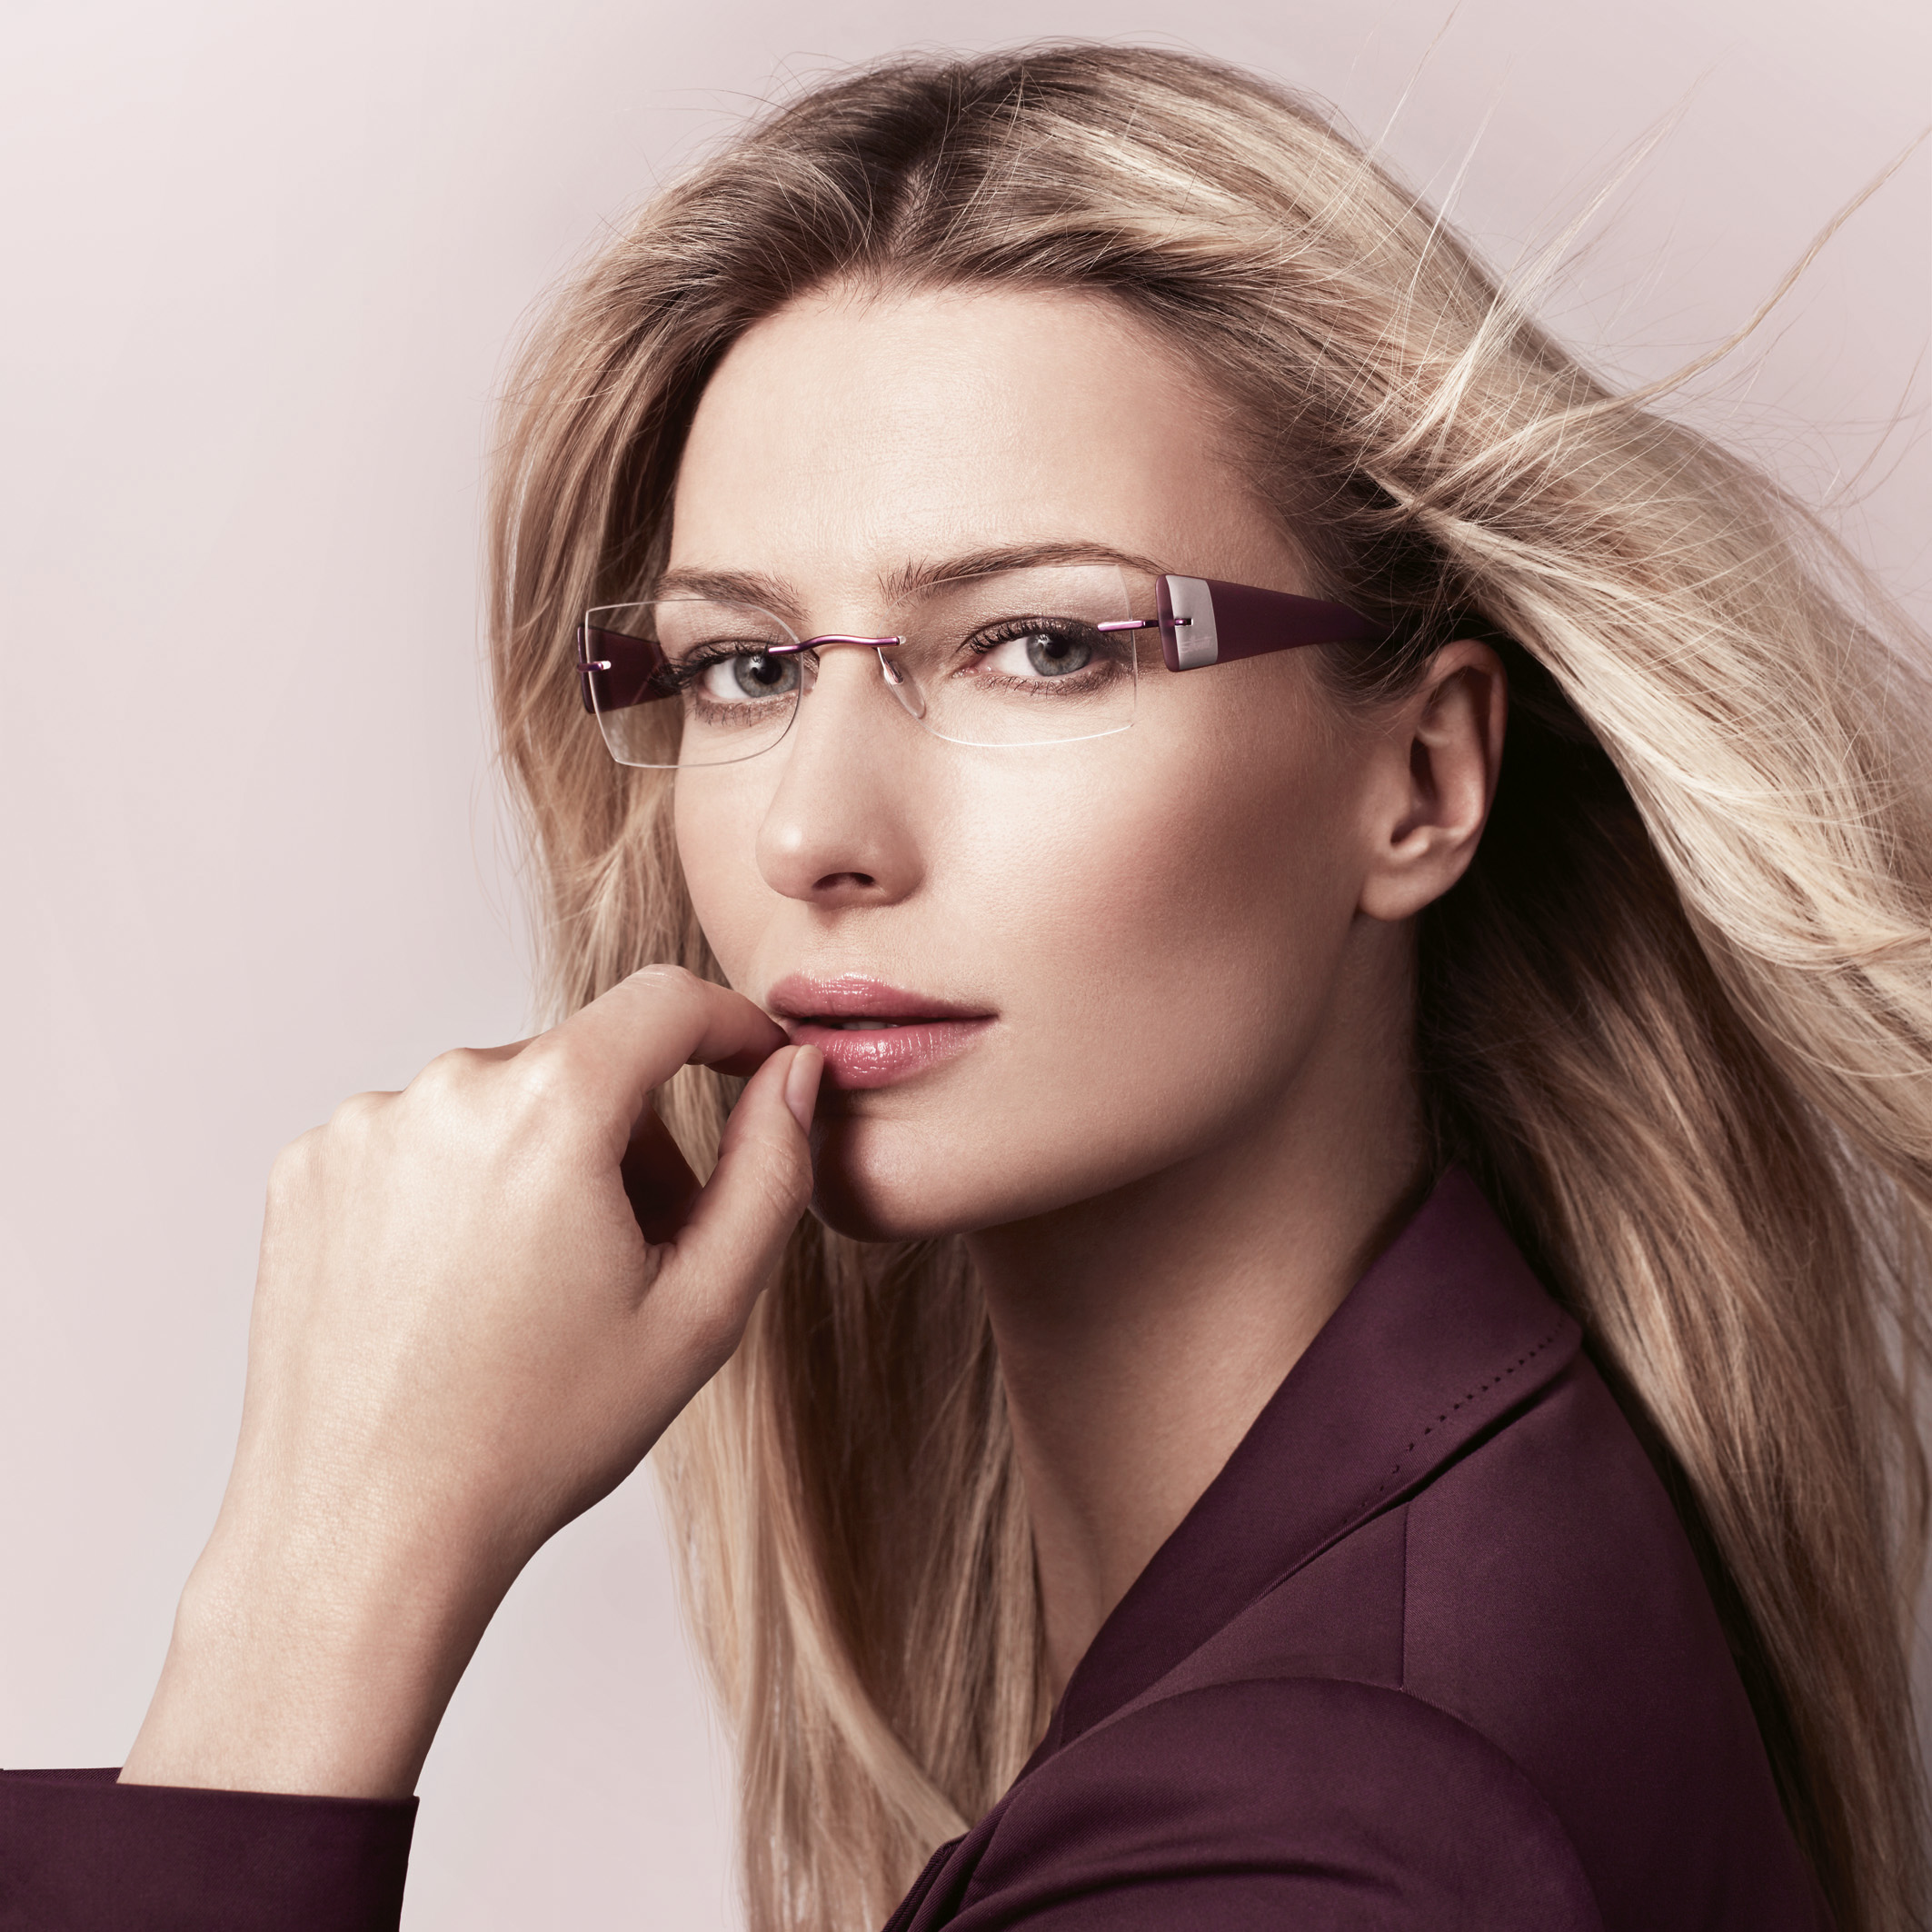 haircut for rounded glasses styles fashion trends styles for 2014 6061